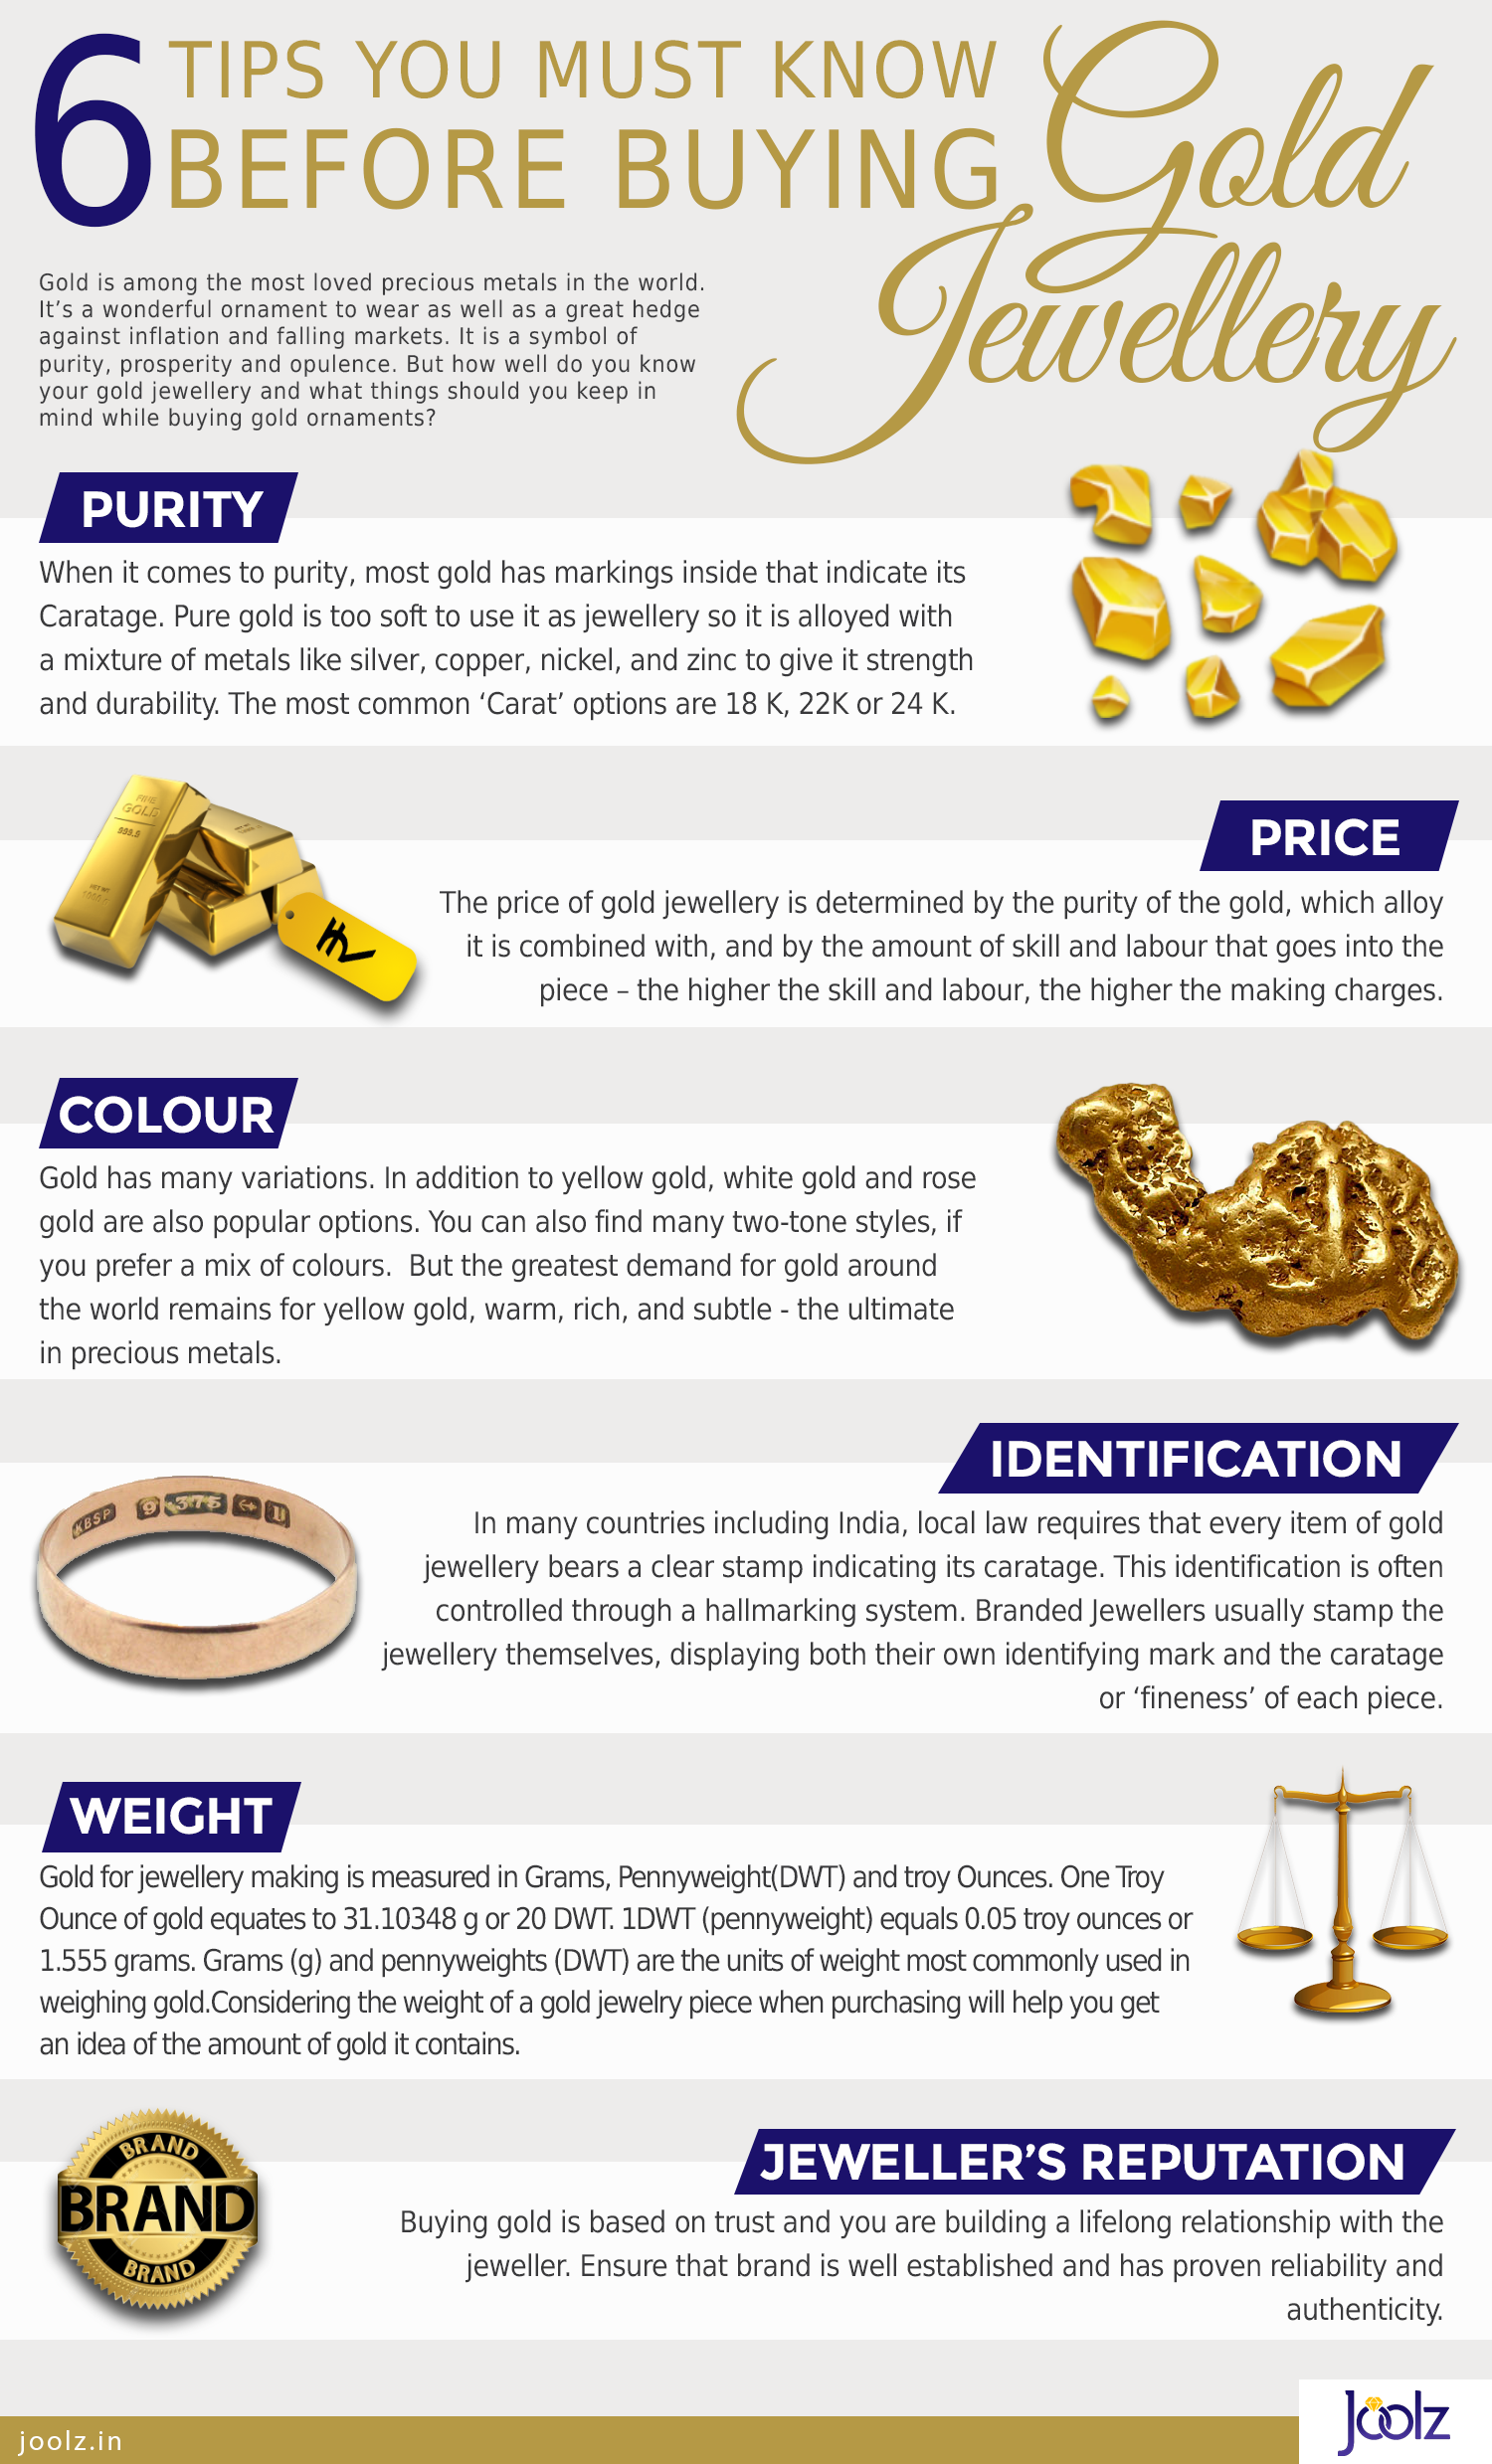 6 Tips You Must Know Before Buying Gold Jewellery